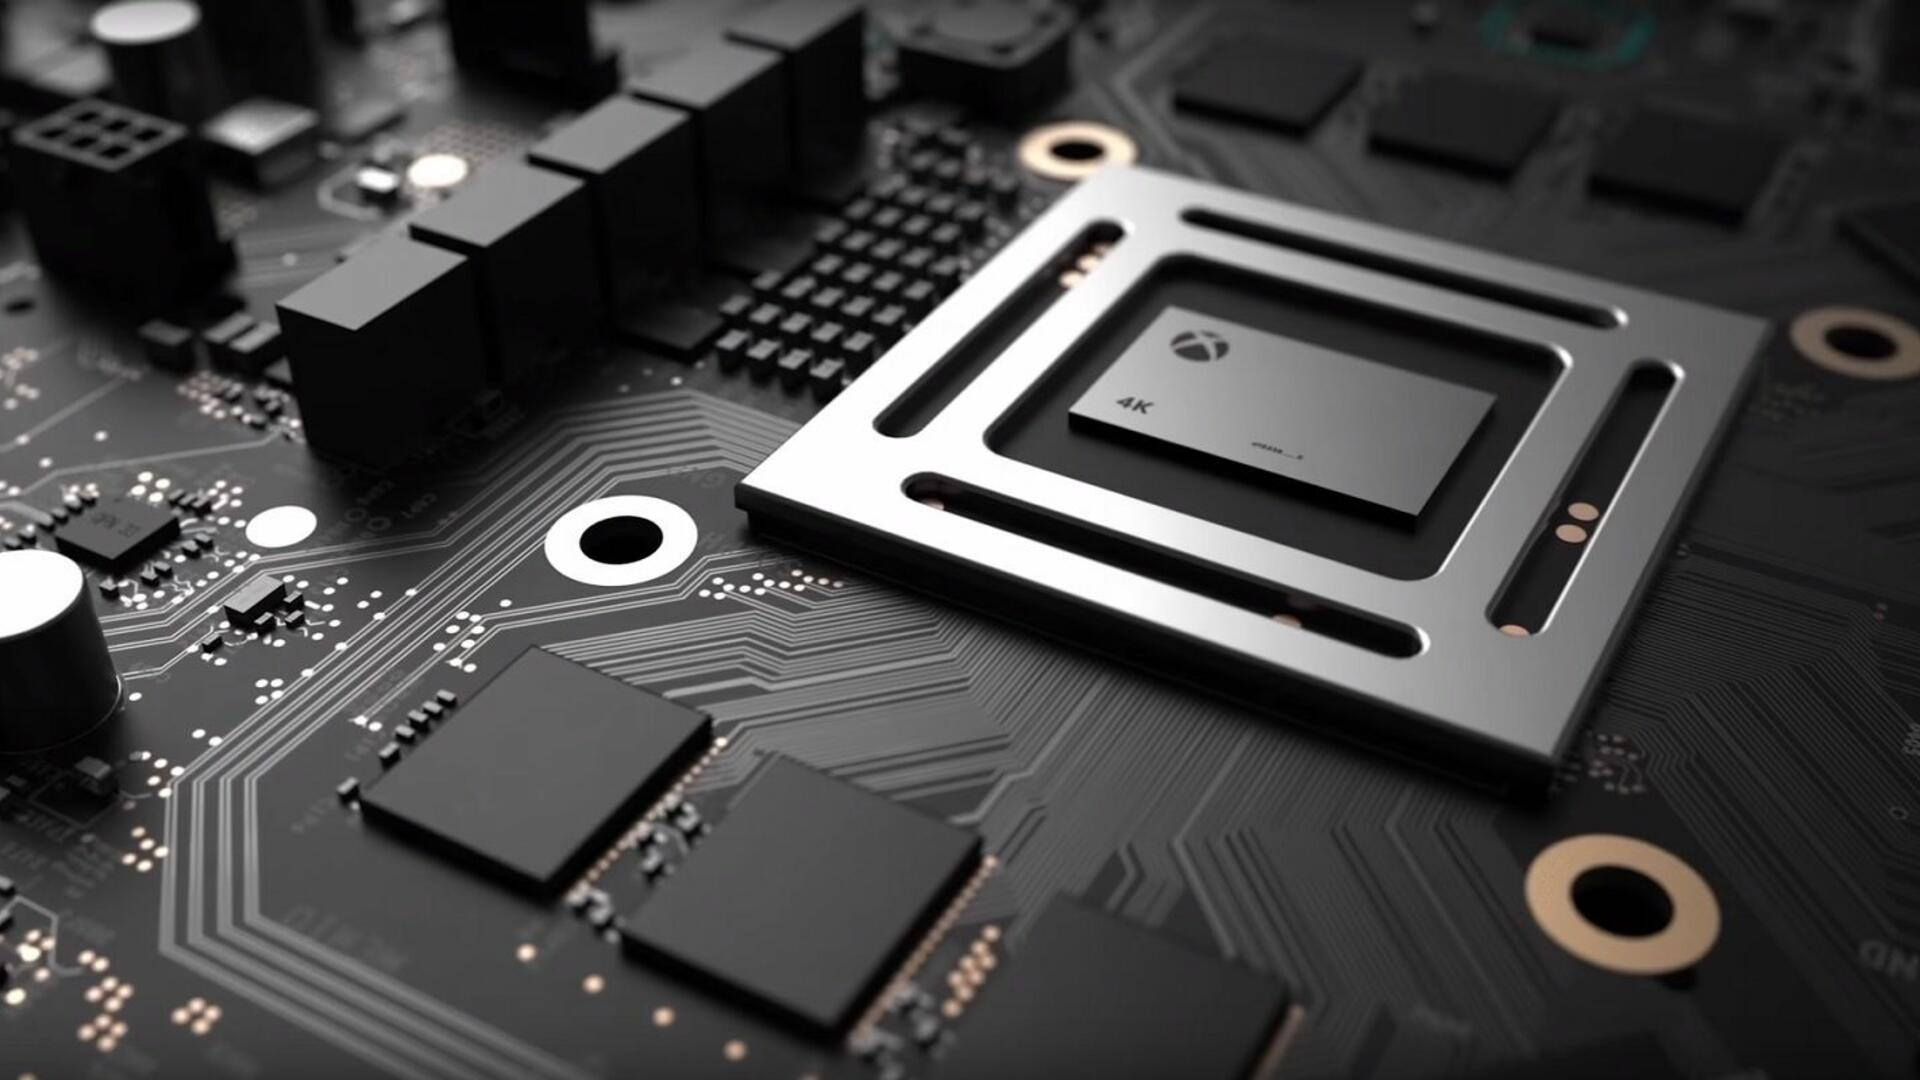 Xbox One X Pre-order, Reviews, Price, Release Date, X